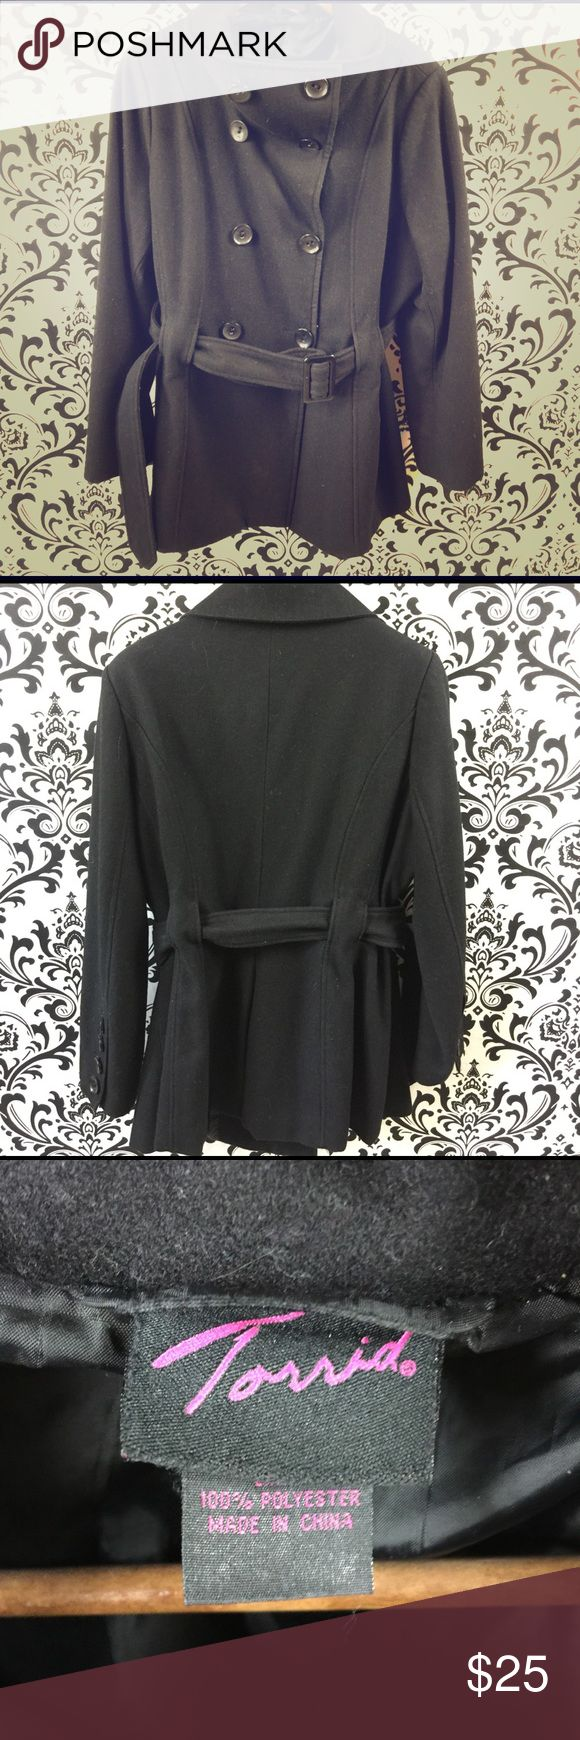 Black torrid pea coat size 2x High quality black pea coat from torrid size 2X. Bundle and save! Offers are welcome! torrid Jackets & Coats Pea Coats